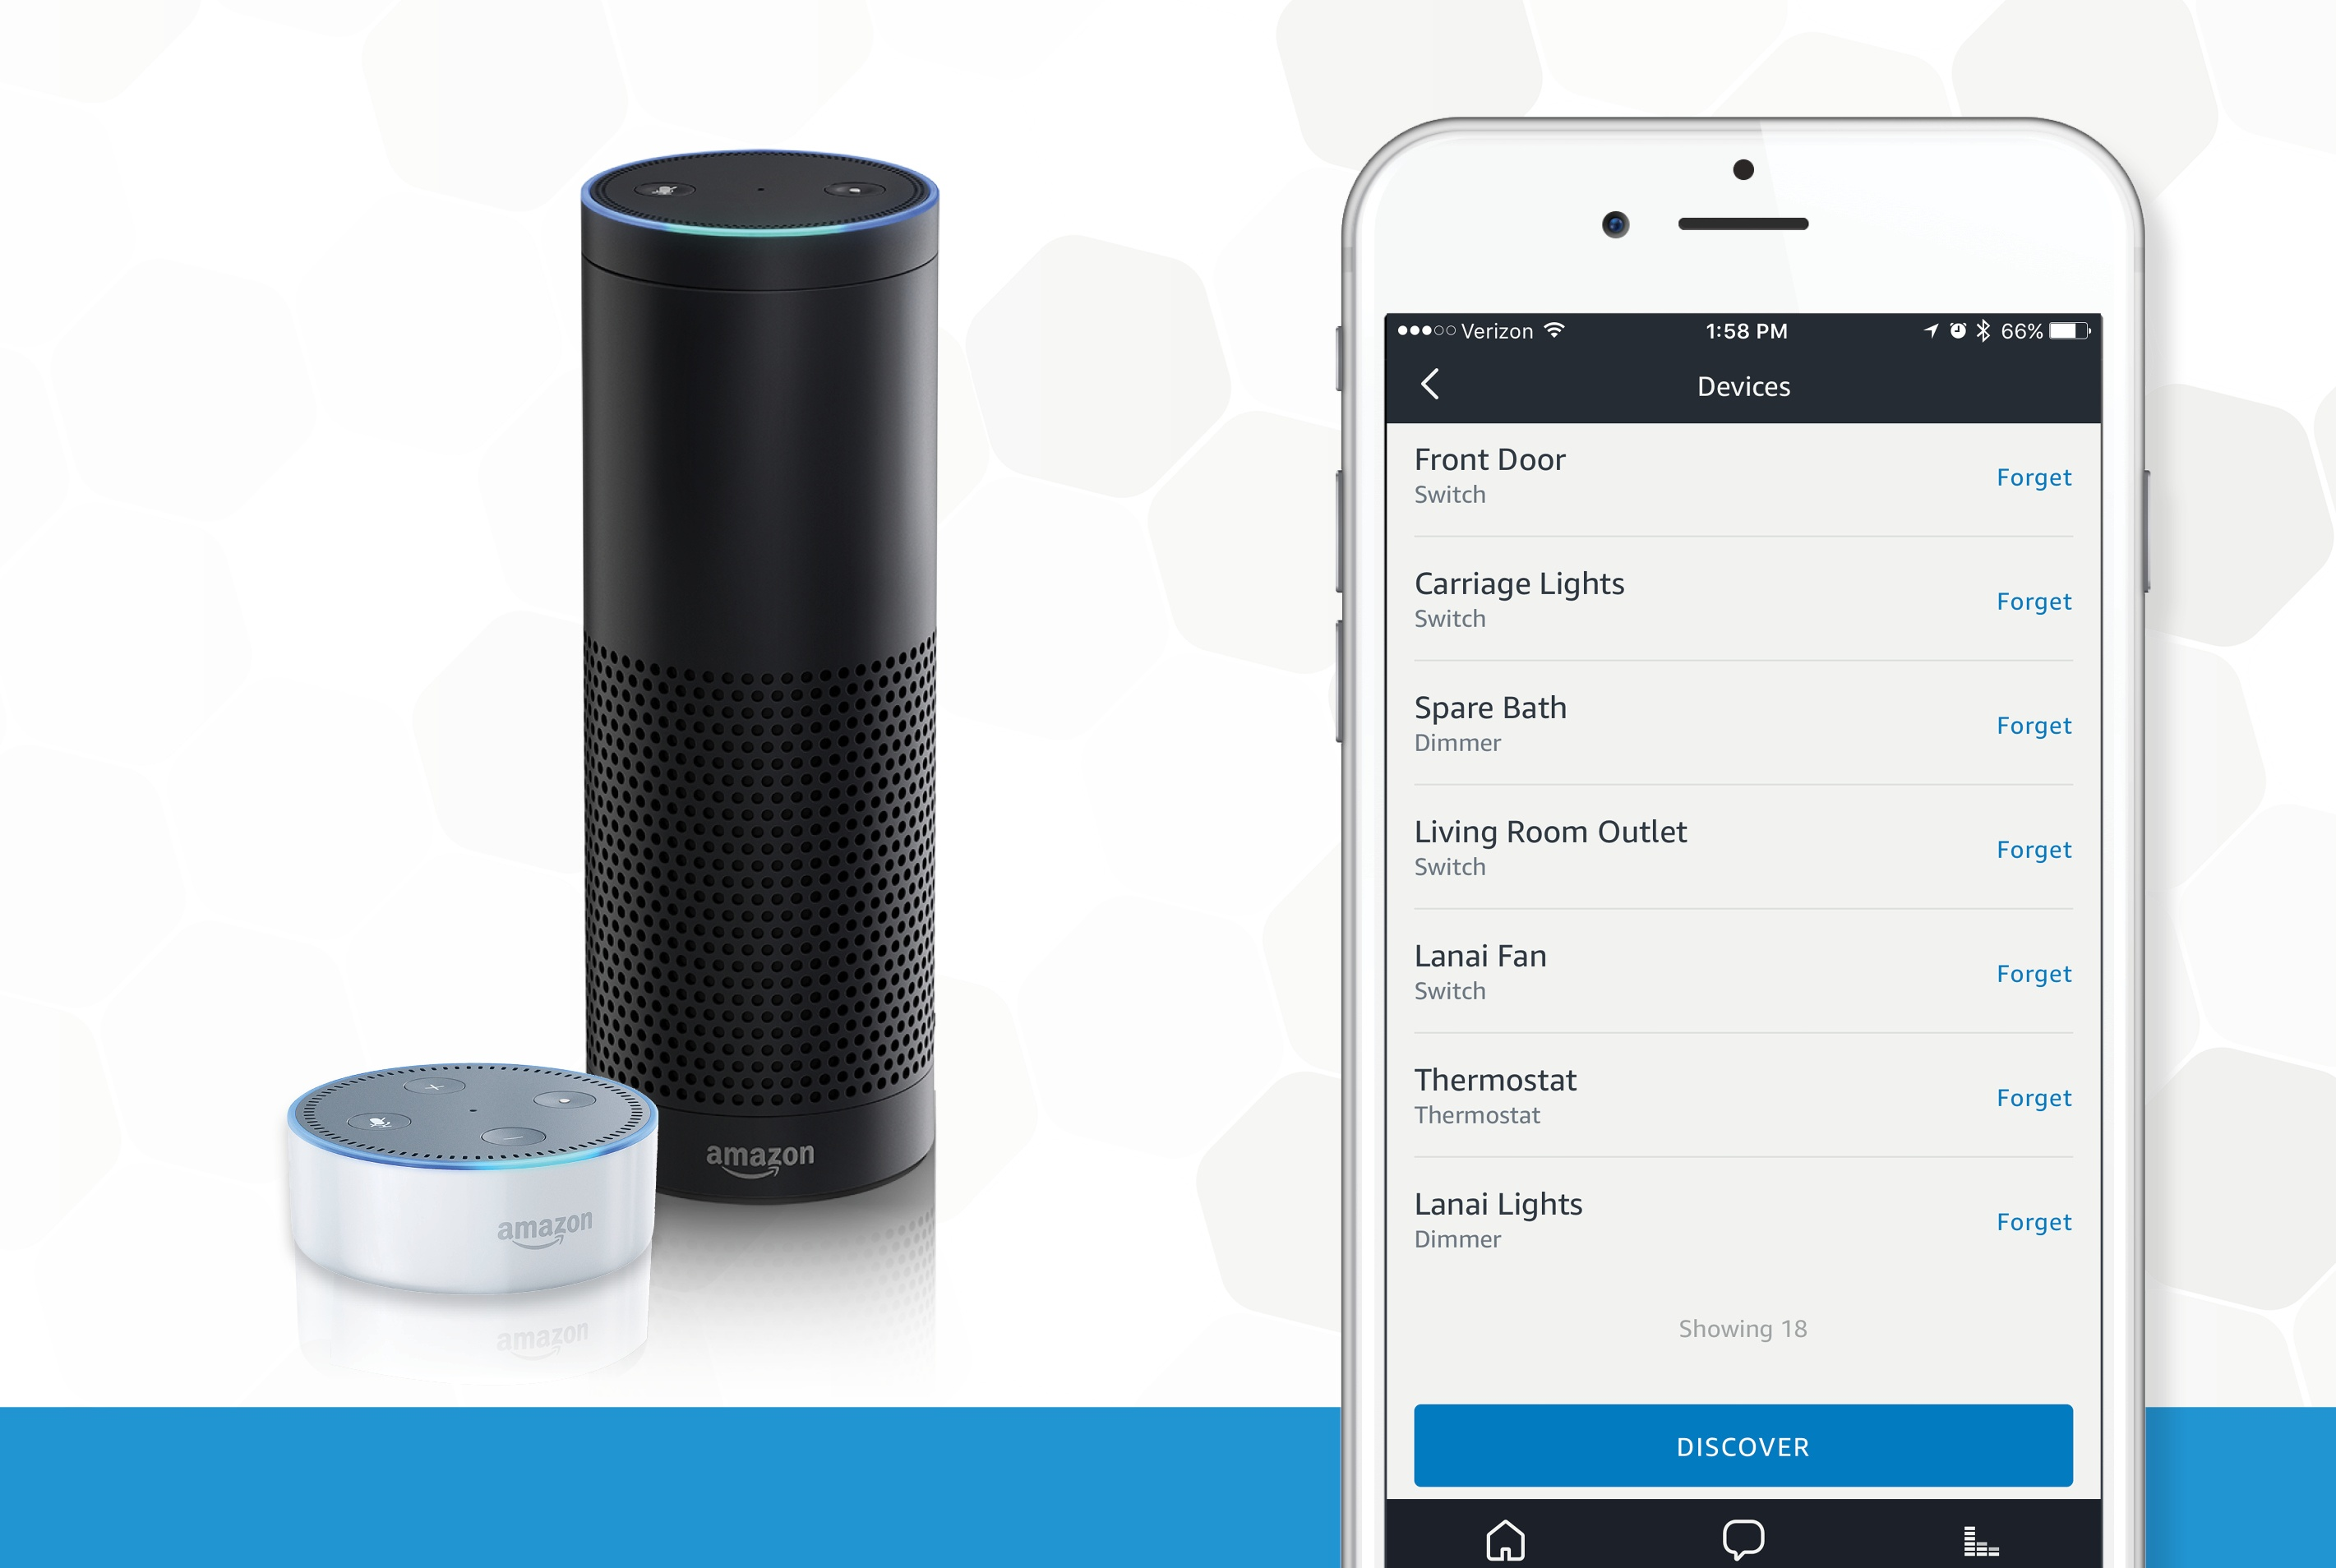 Renaming Smart Home Devices to Work with Alexa